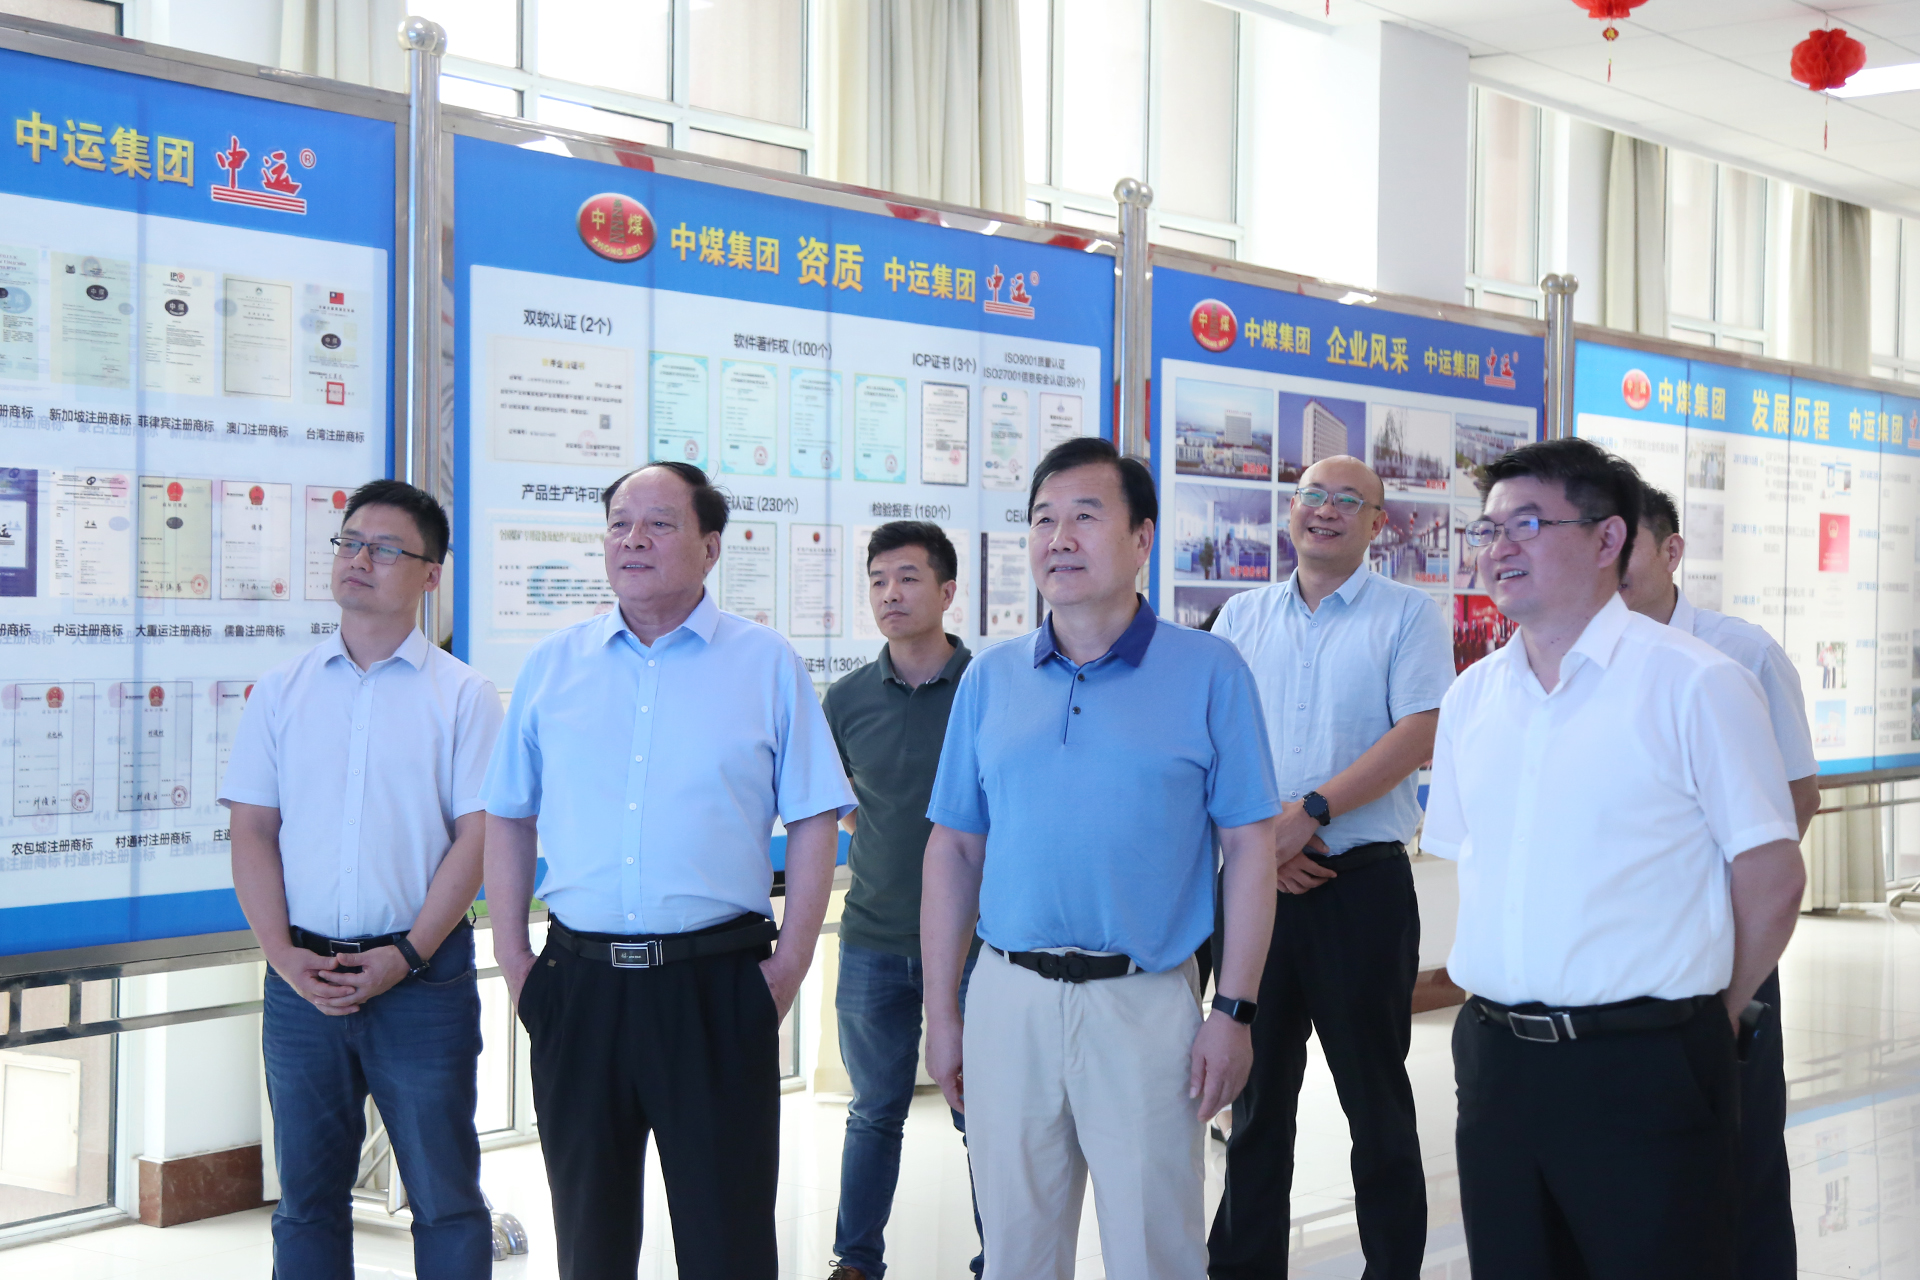 Warmly Welcome The Leaders Of The Ministry Of Industry And Information Technology To Visit China Coal Group